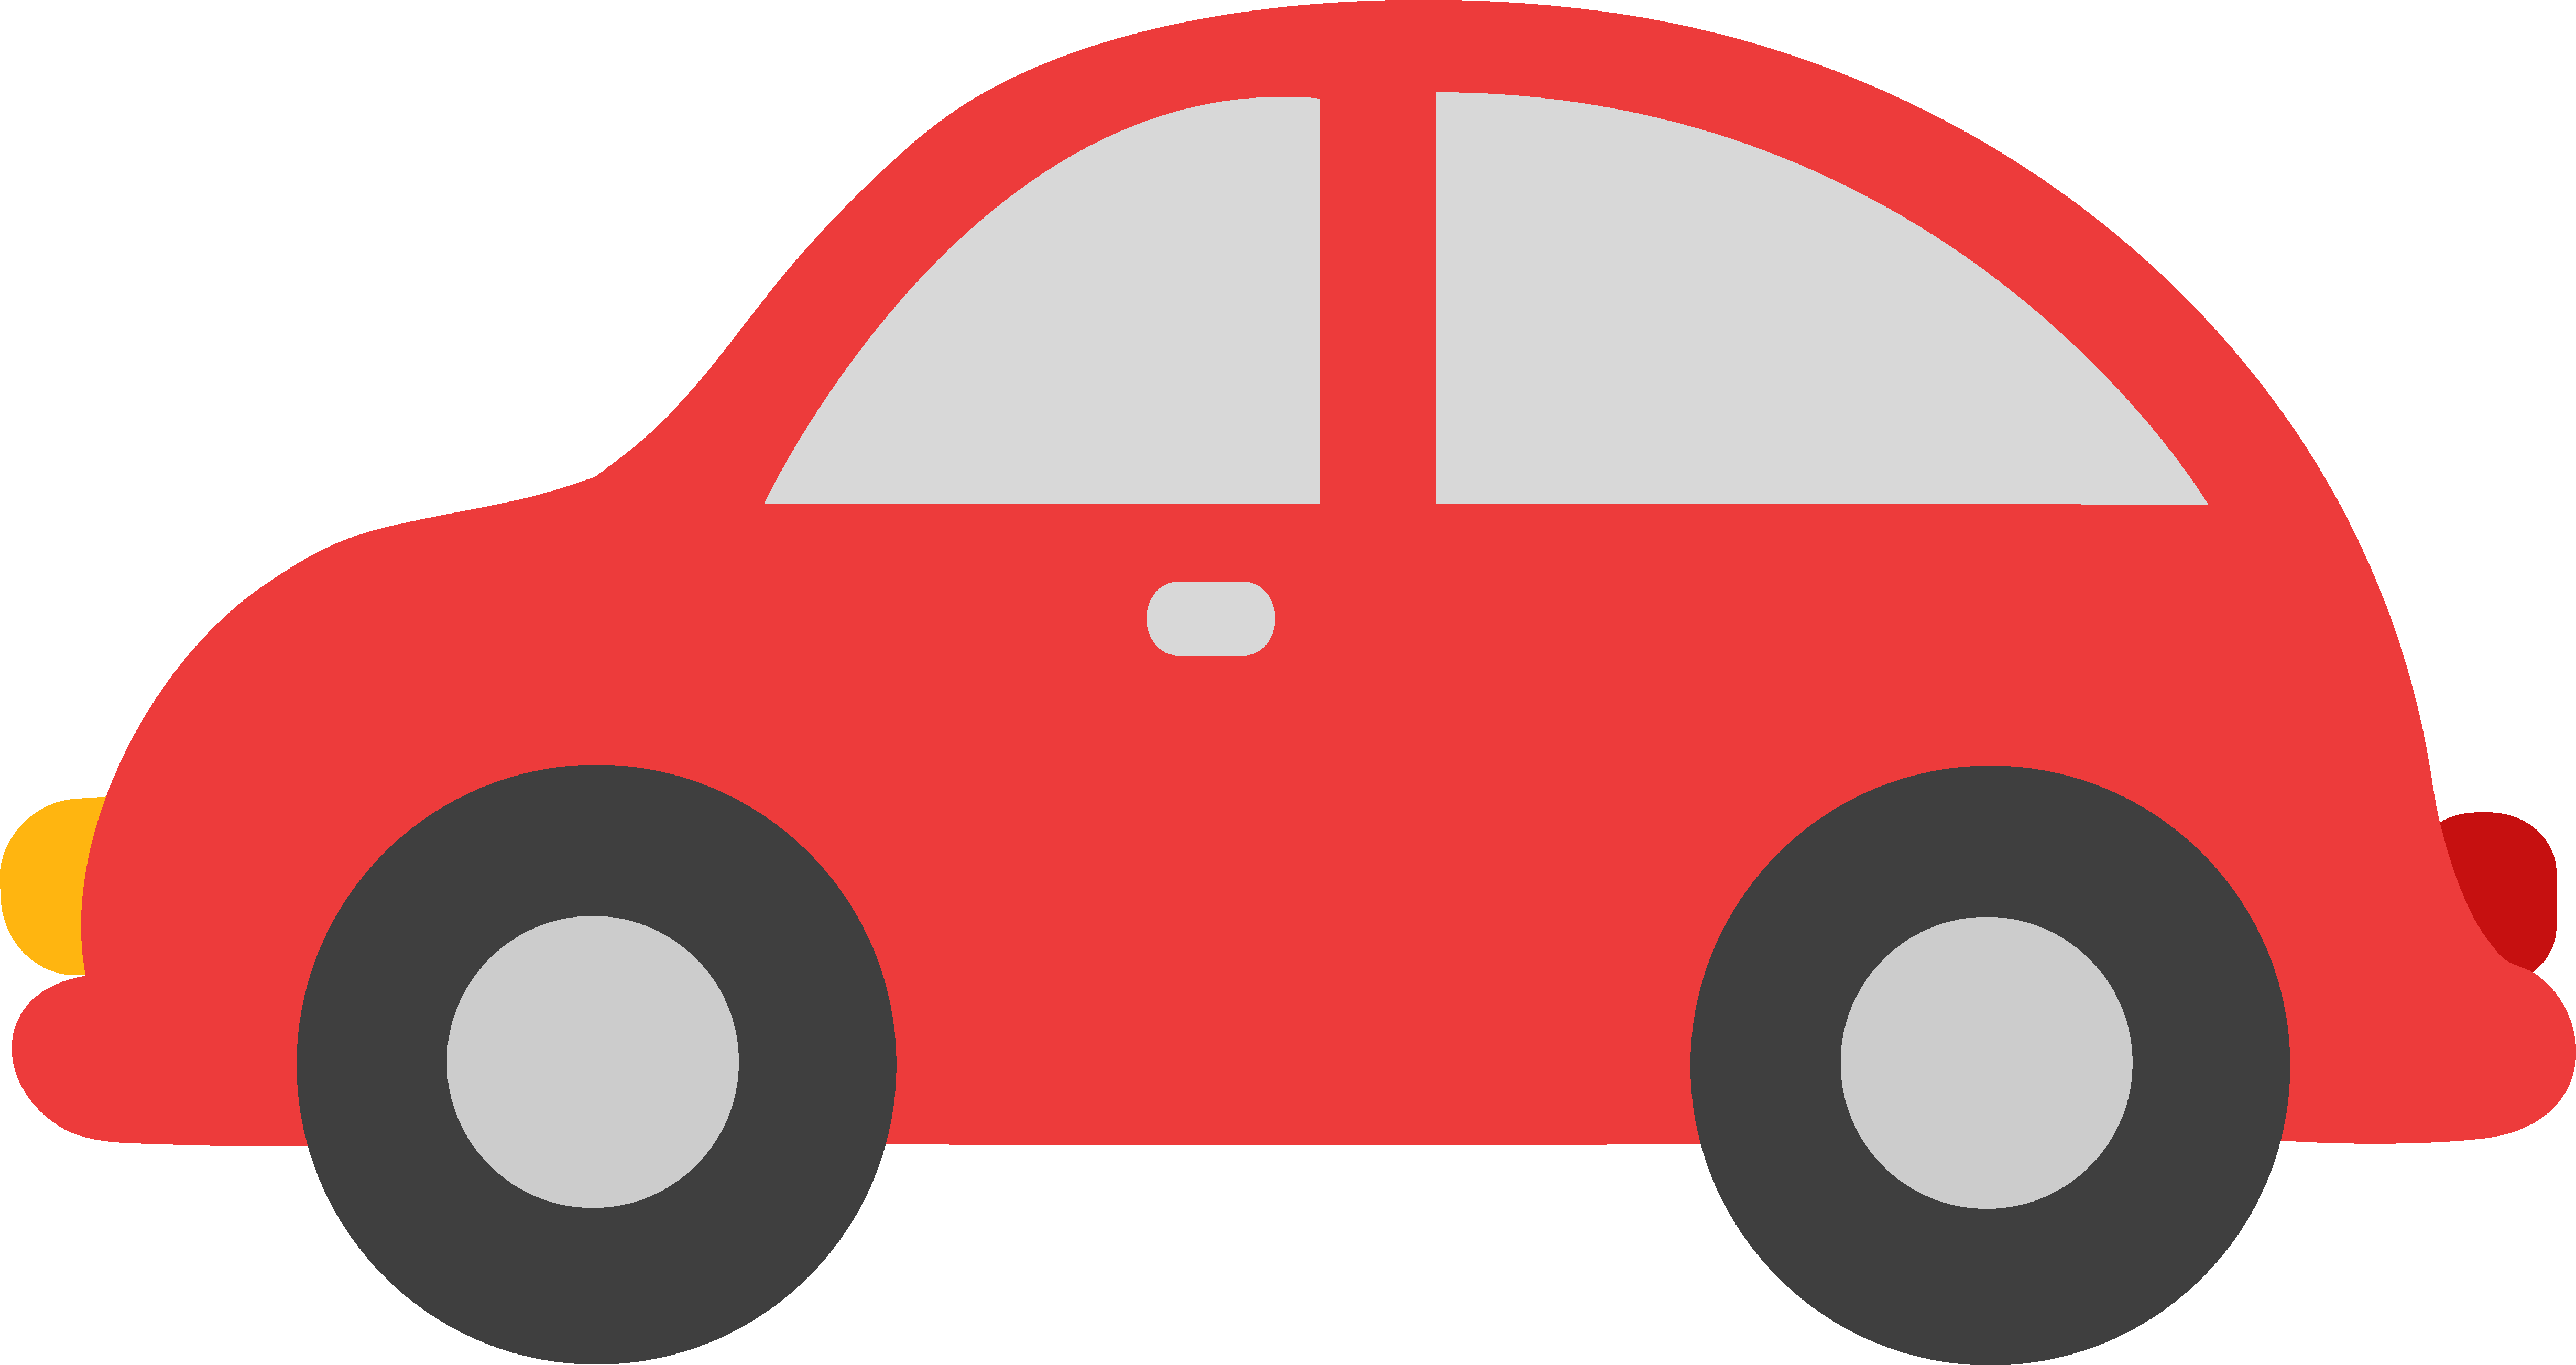 4916x2605 Red Toy Car Clipart By Liz Free Clip Art